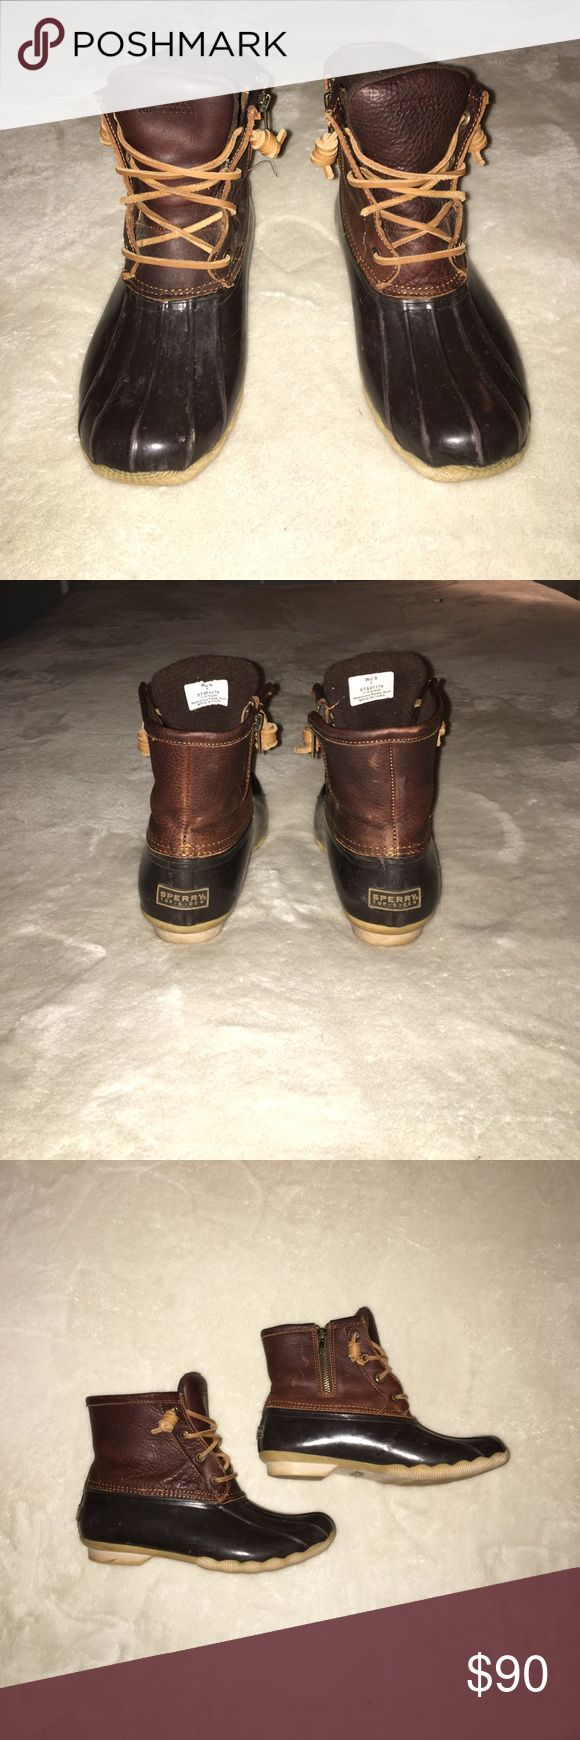 Sperry Top-Sider Boots Brown Sperry Top-Sider Brown Boots! Good condition! Super comfortable and super warm for the cold, wet fall/winter days!! Sperry Top-Sider Shoes Winter & Rain Boots